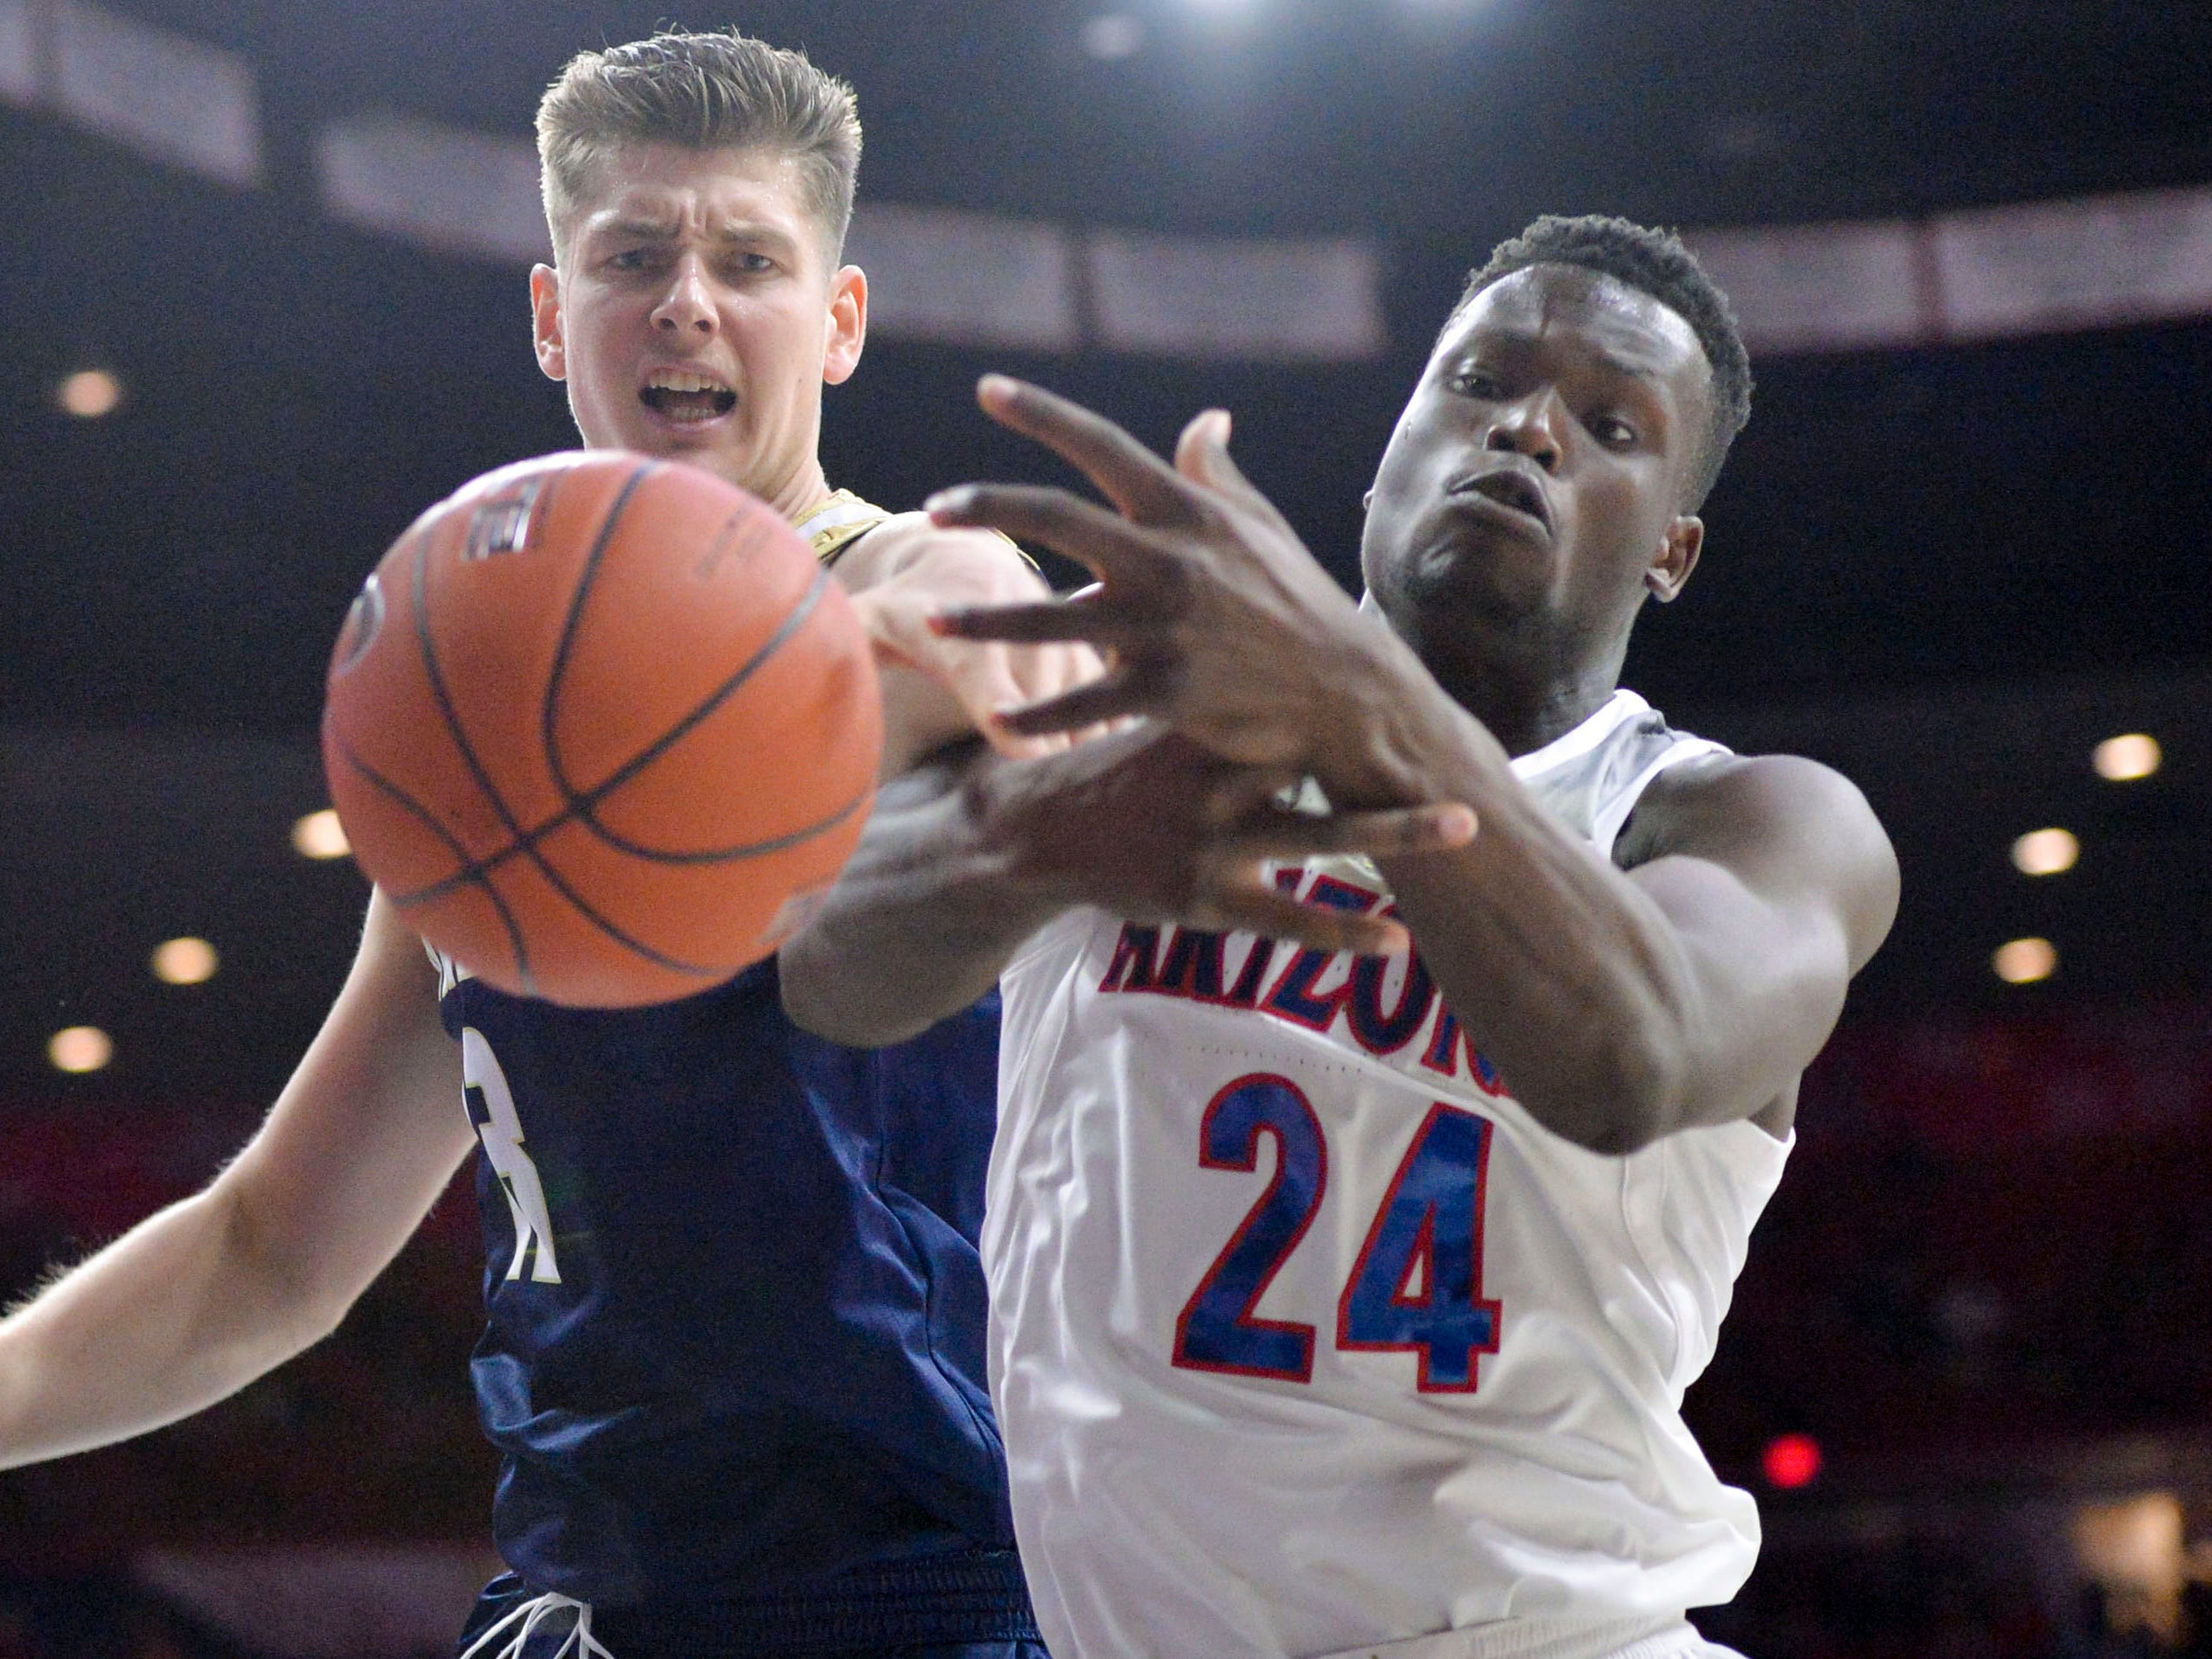 Dec 22, 2018; Tucson, AZ, USA; UC Davis Aggies center Matt Neufeld (13) and Arizona Wildcats guard Emmanuel Akot (24) battle for the ball during the first half at McKale Center. Mandatory Credit: Casey Sapio-USA TODAY Sports